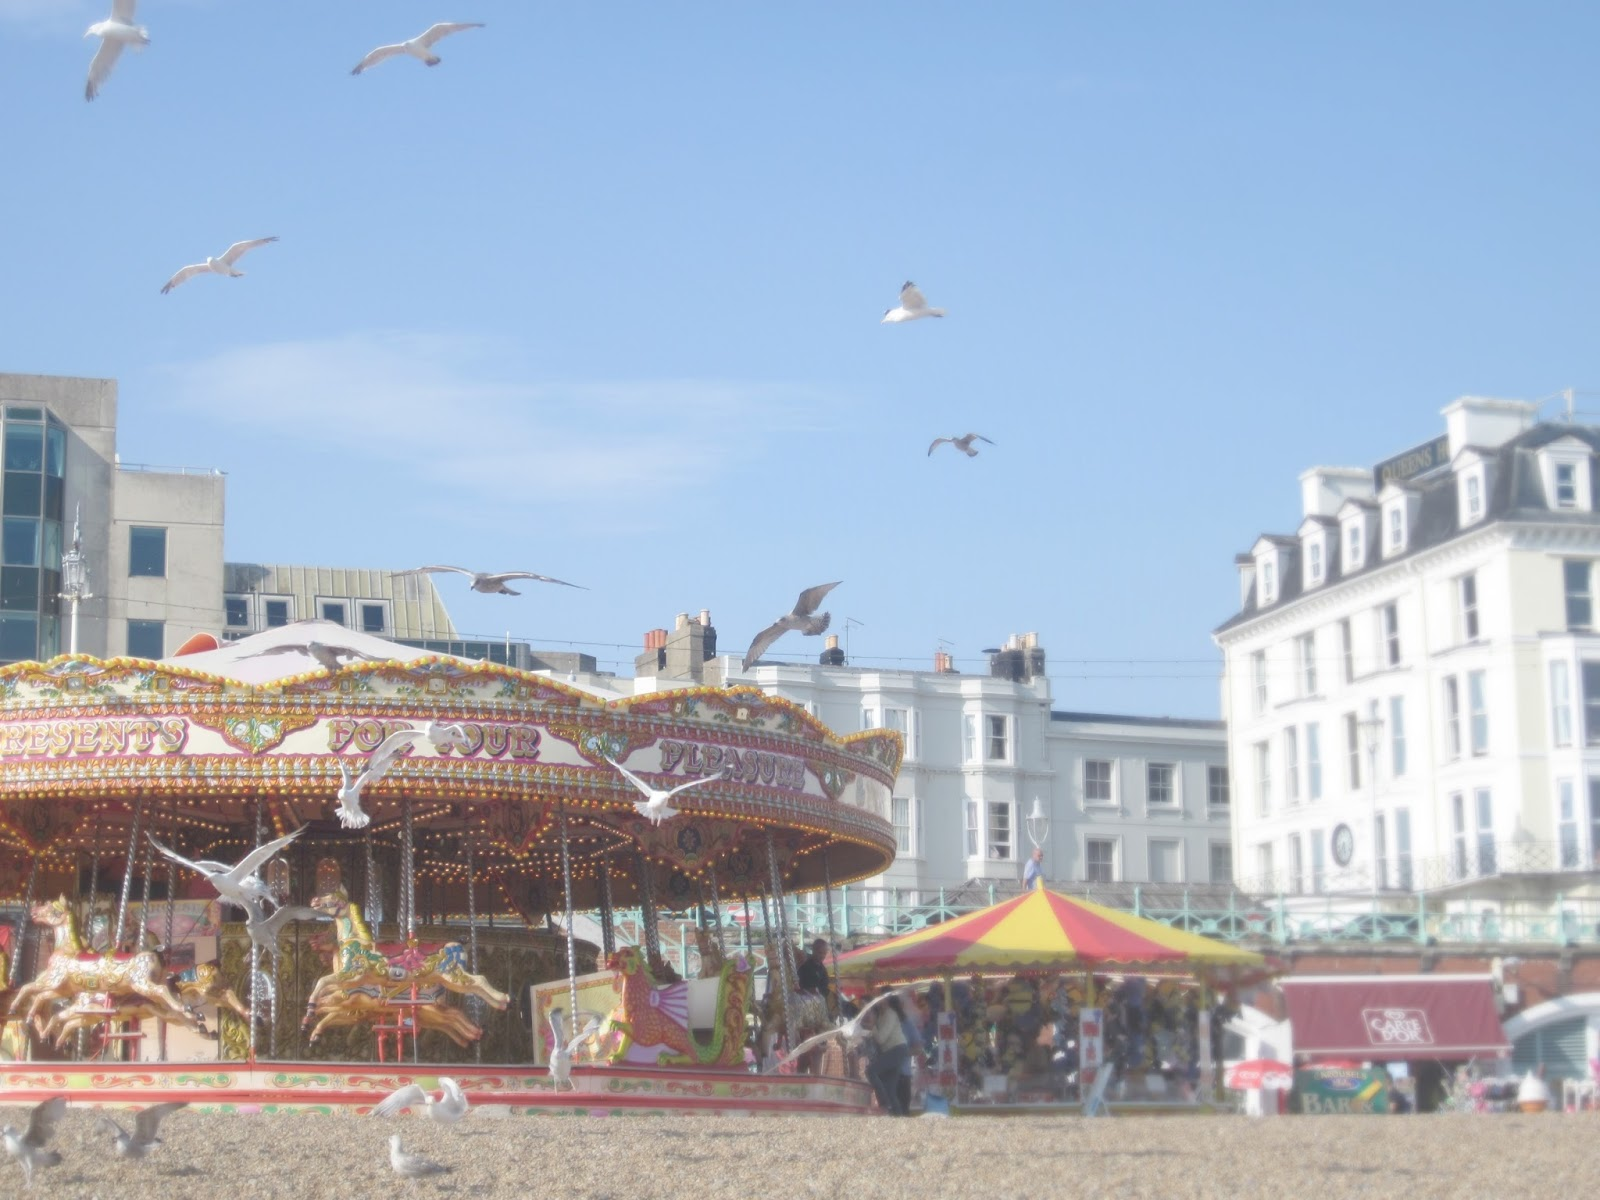 Brighton Carousel with seagulls on beach